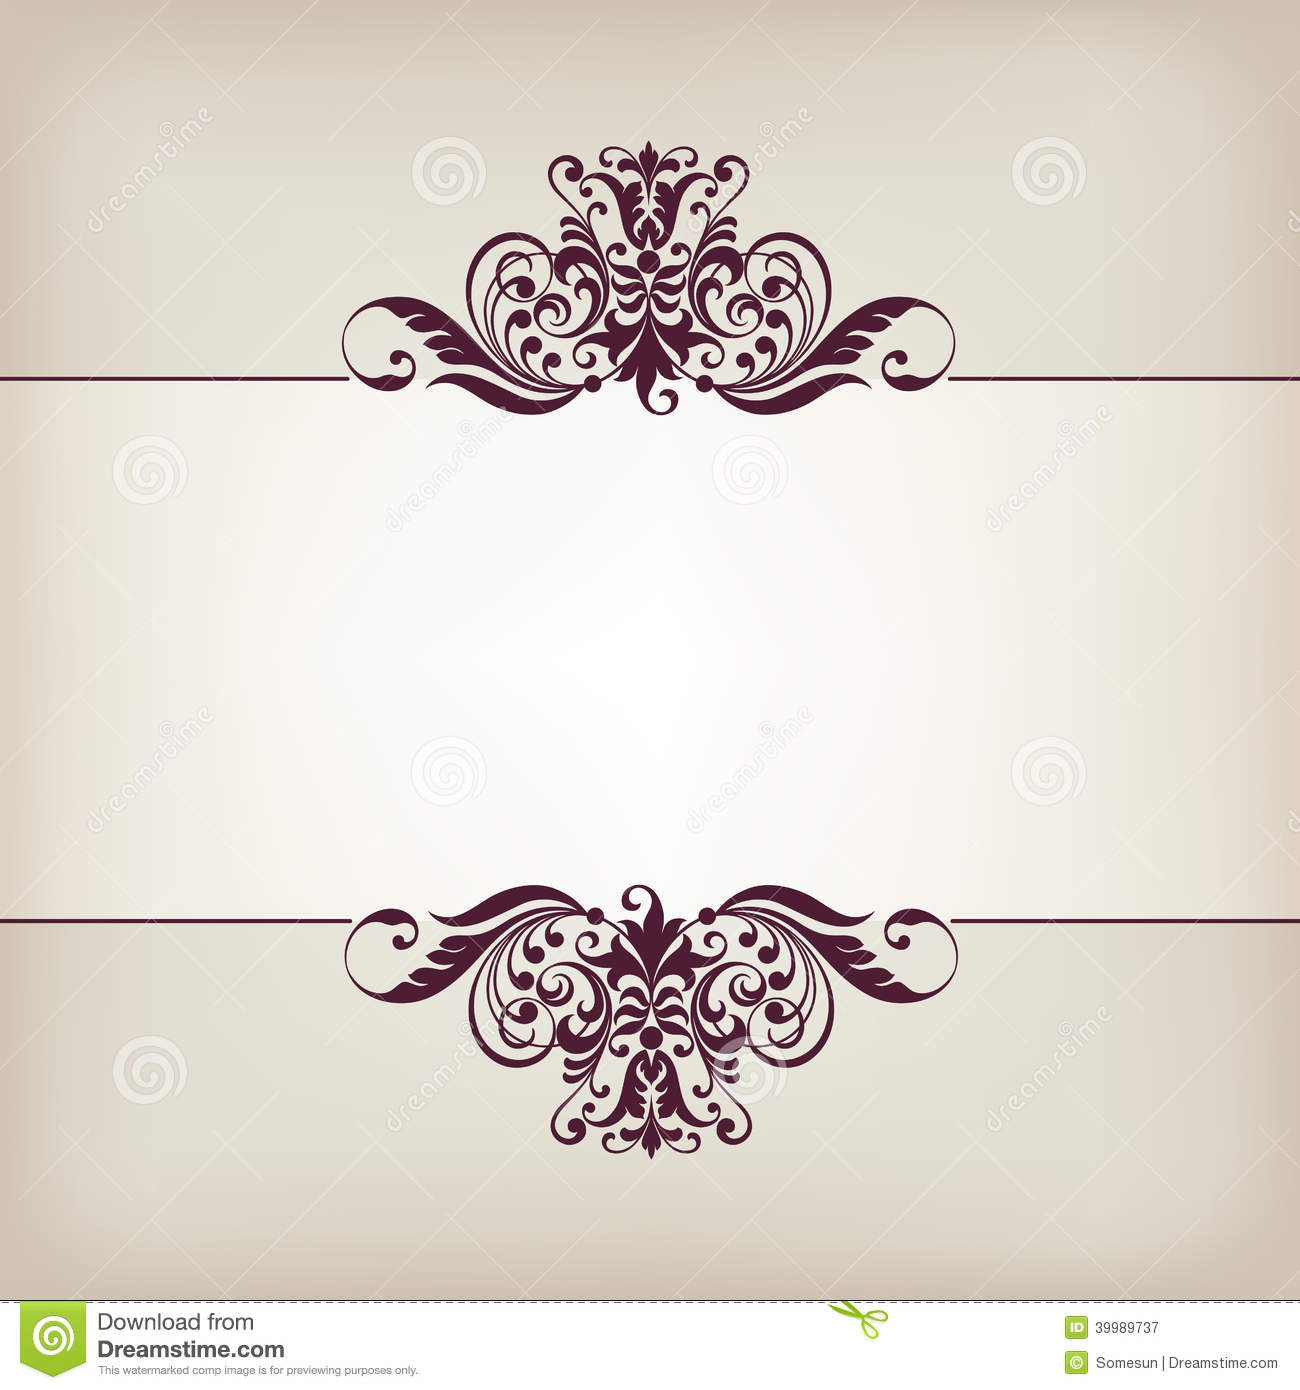 ... pattern in antique baroque style arabic decorative calligraphy design